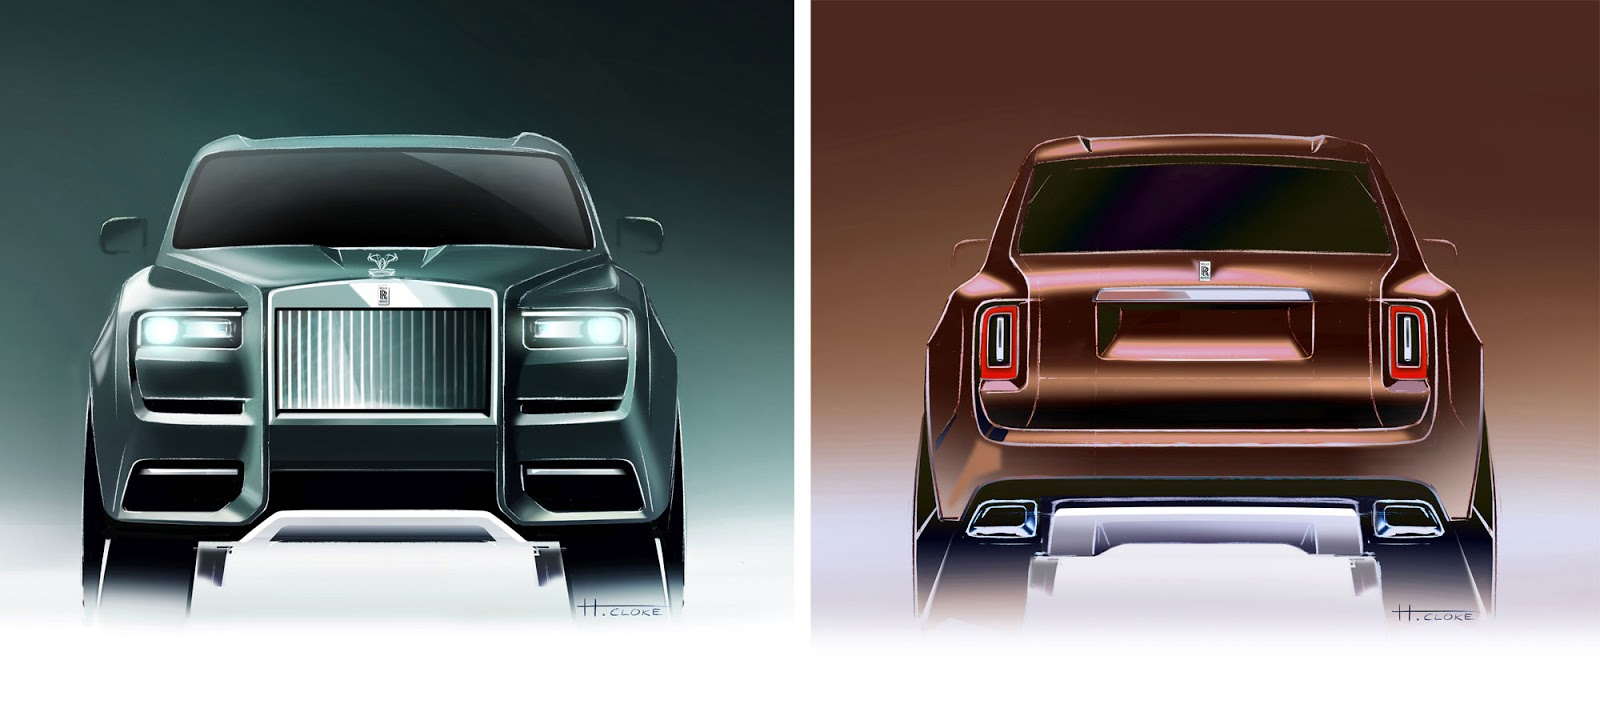 Rolls-Royce Cullinan front and rear sketches by Henry Cloke